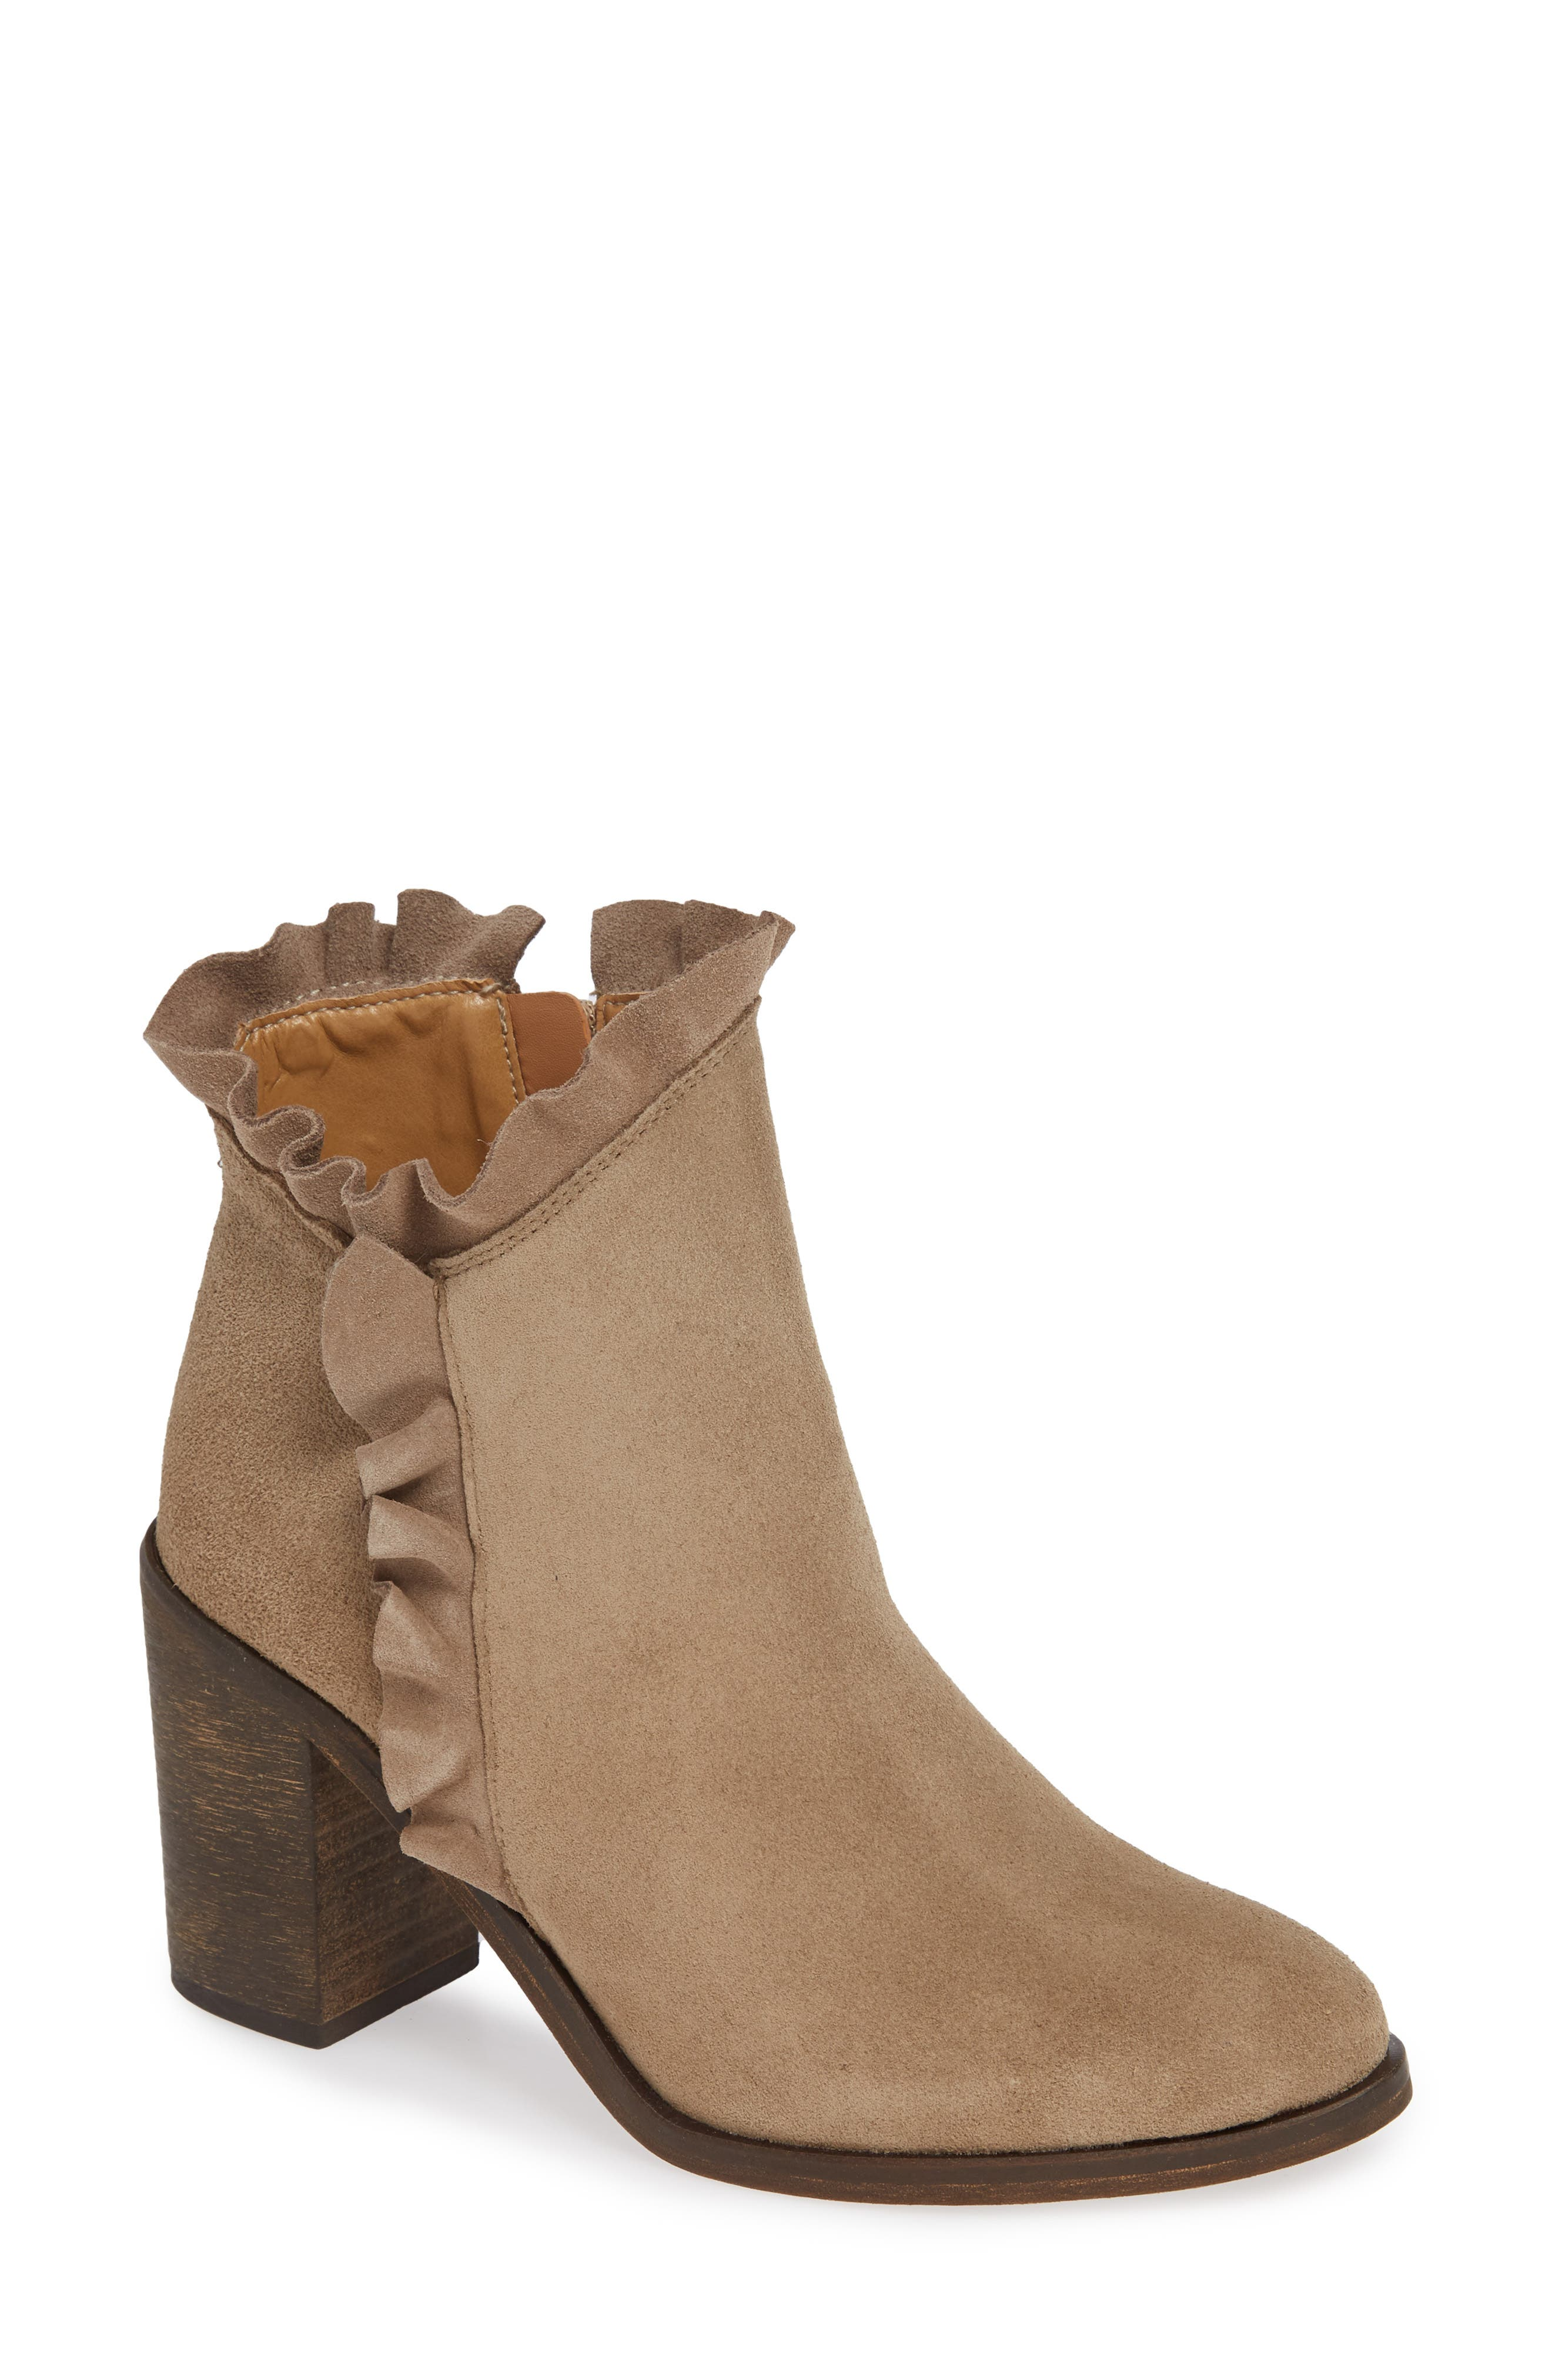 Bellamy Bootie,                             Main thumbnail 1, color,                             TAUPE SUEDE